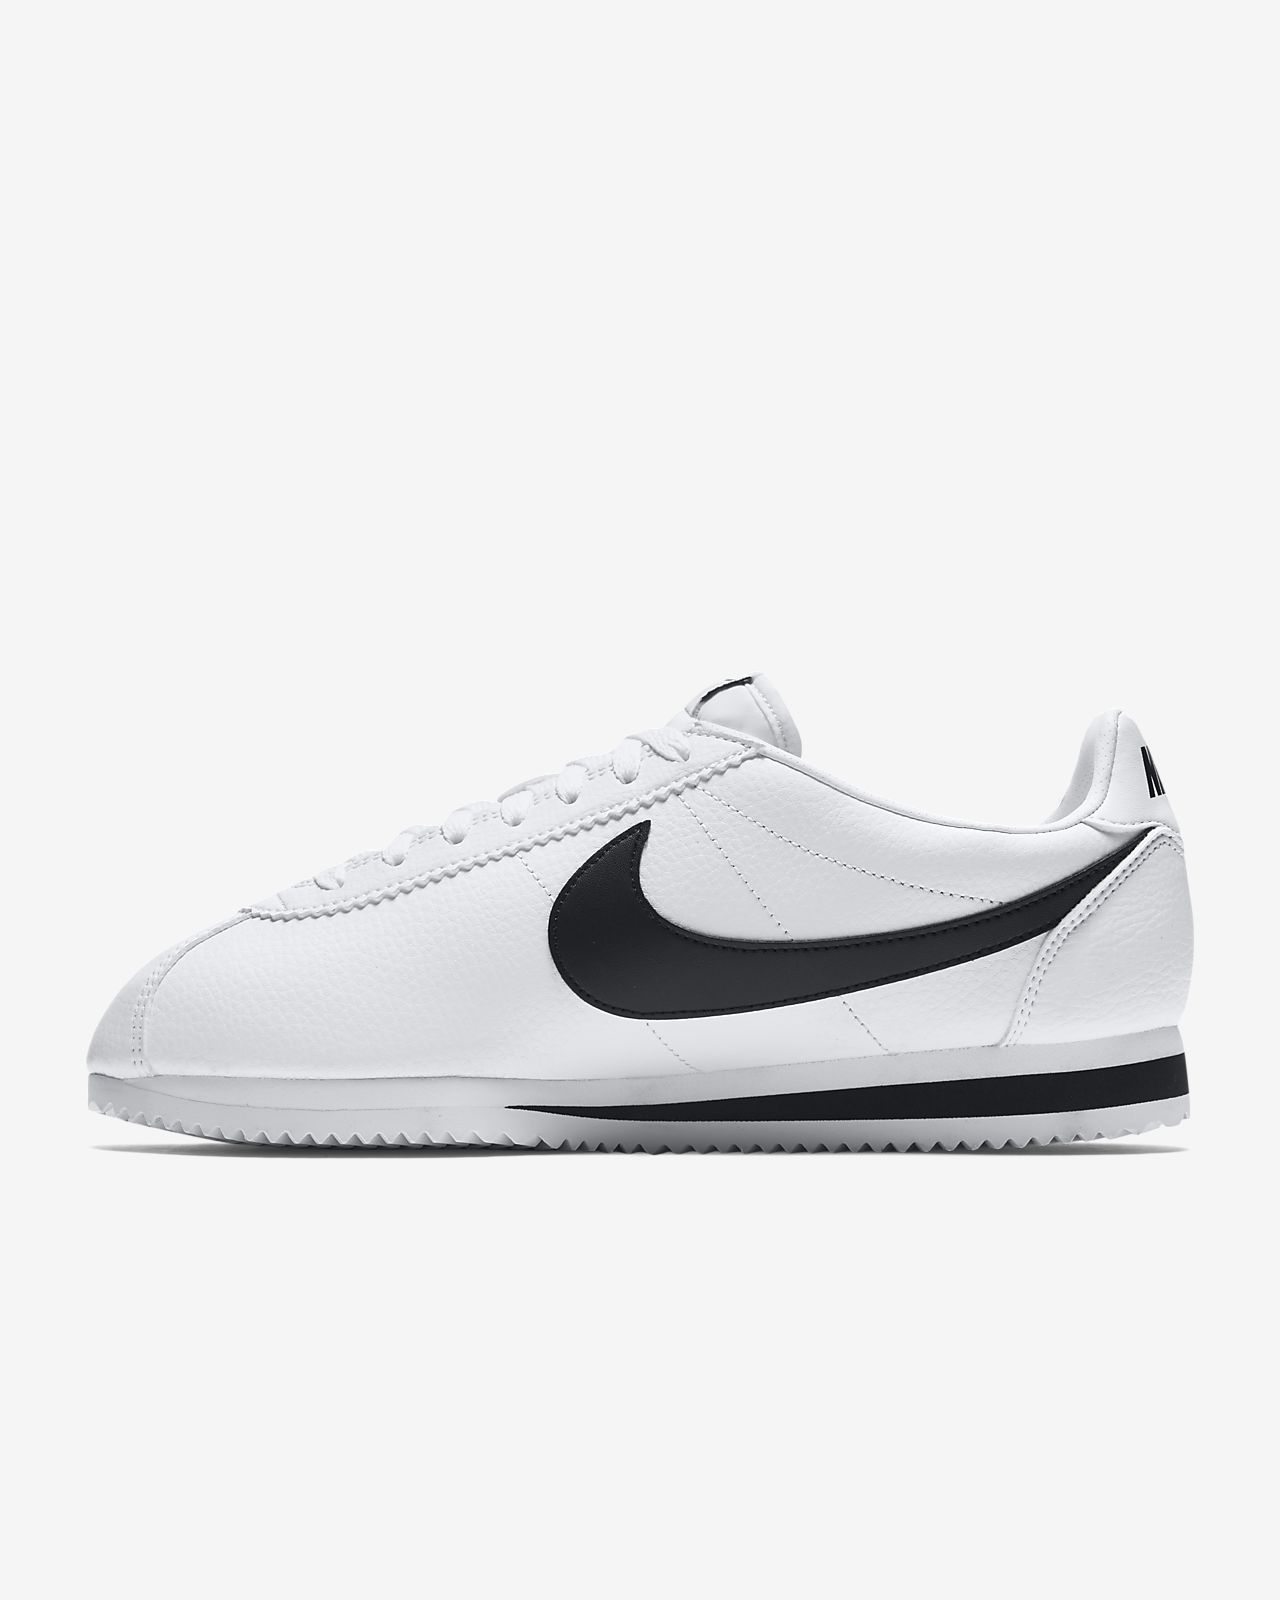 check out 7b1be fafc3 Nike Classic Cortez